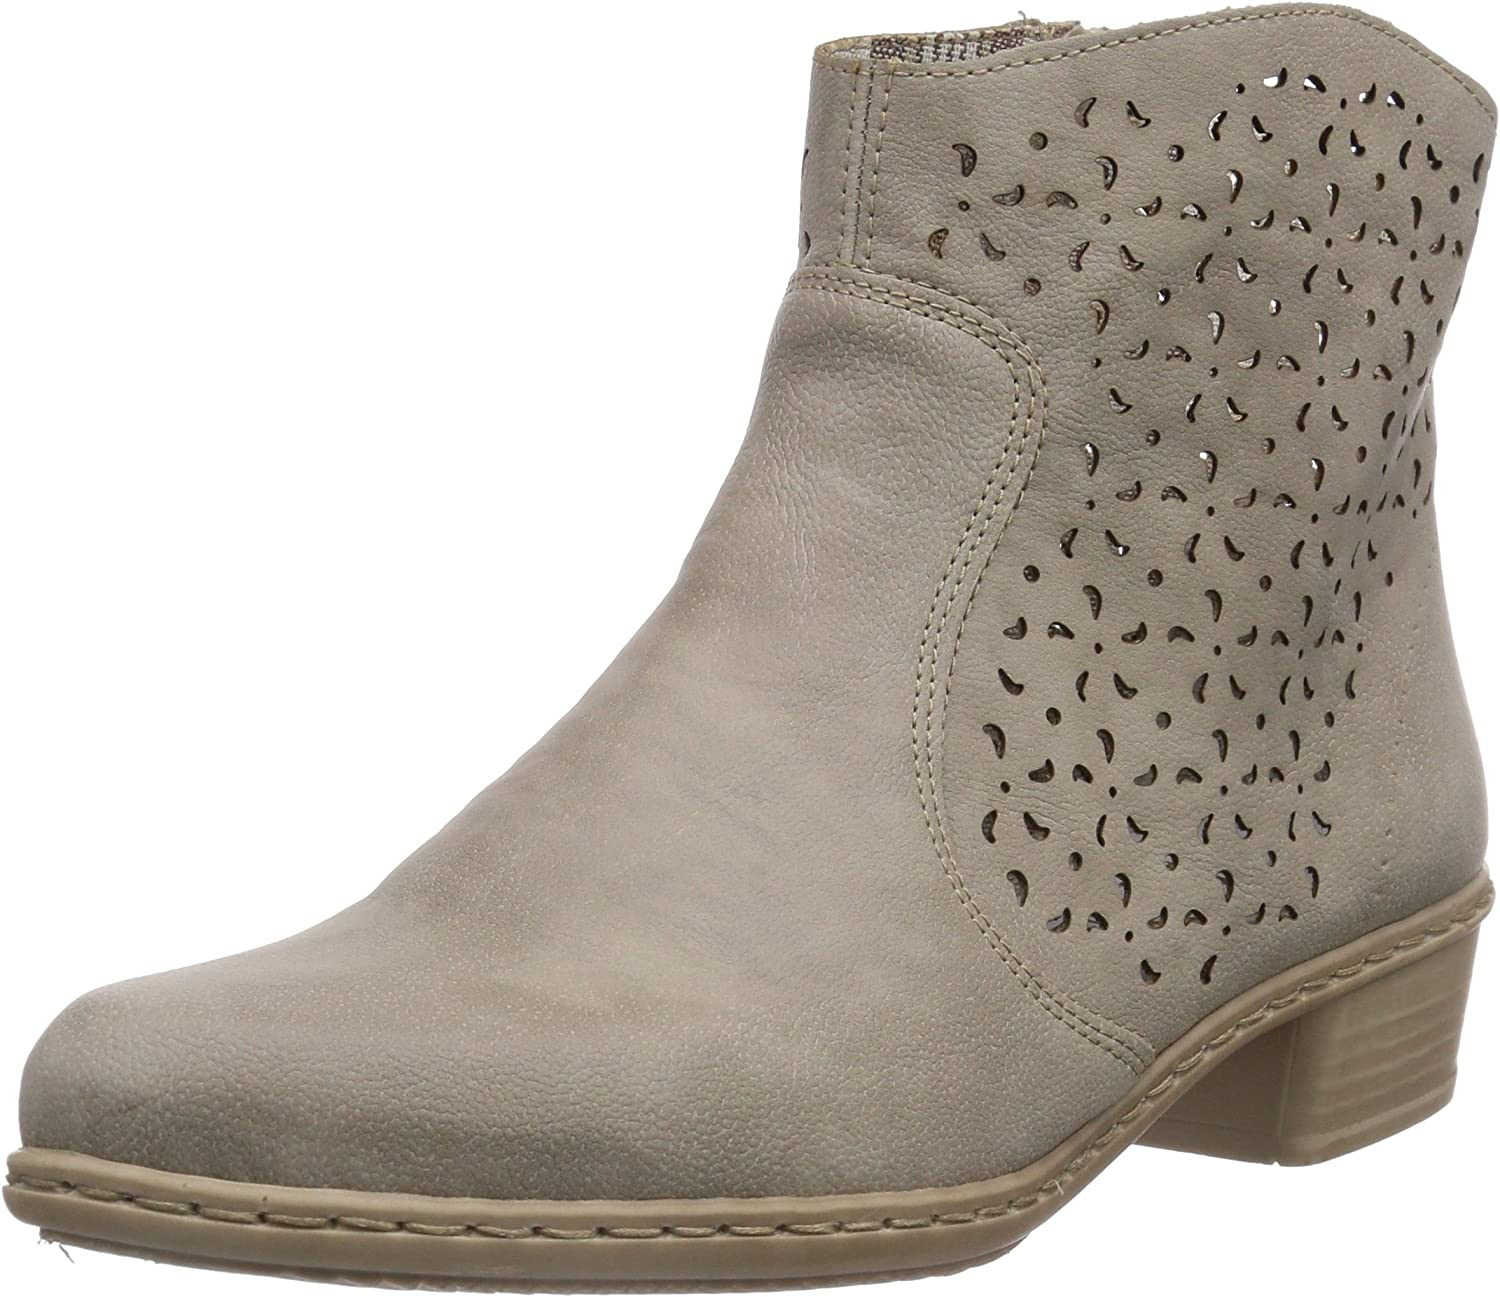 Rieker Womens Ankle Boots Grey